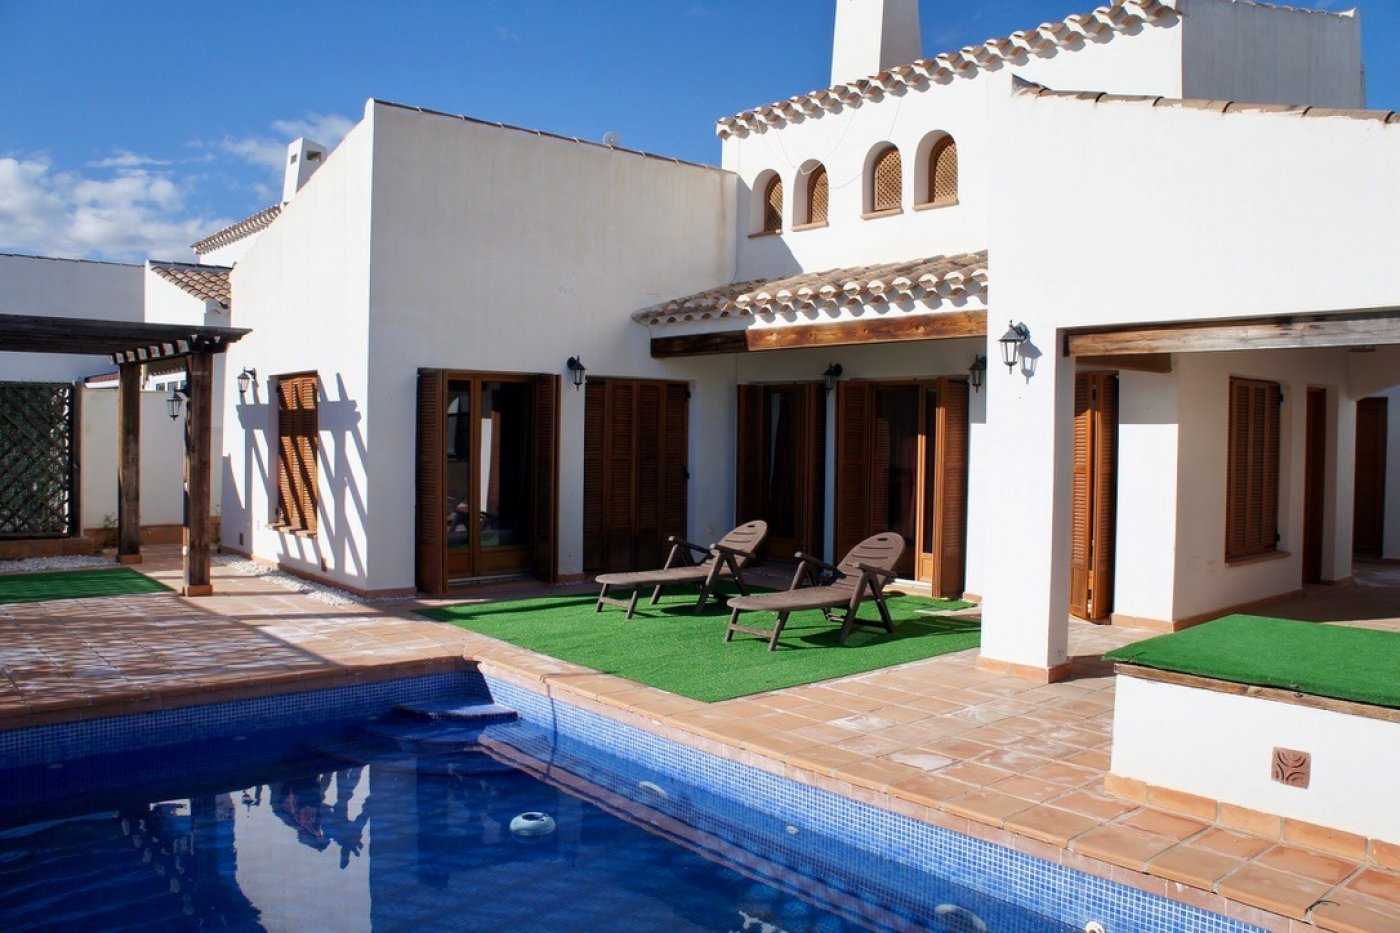 Villa ref 3115 para sale en El Valle Golf Resort España - Quality Homes Costa Cálida